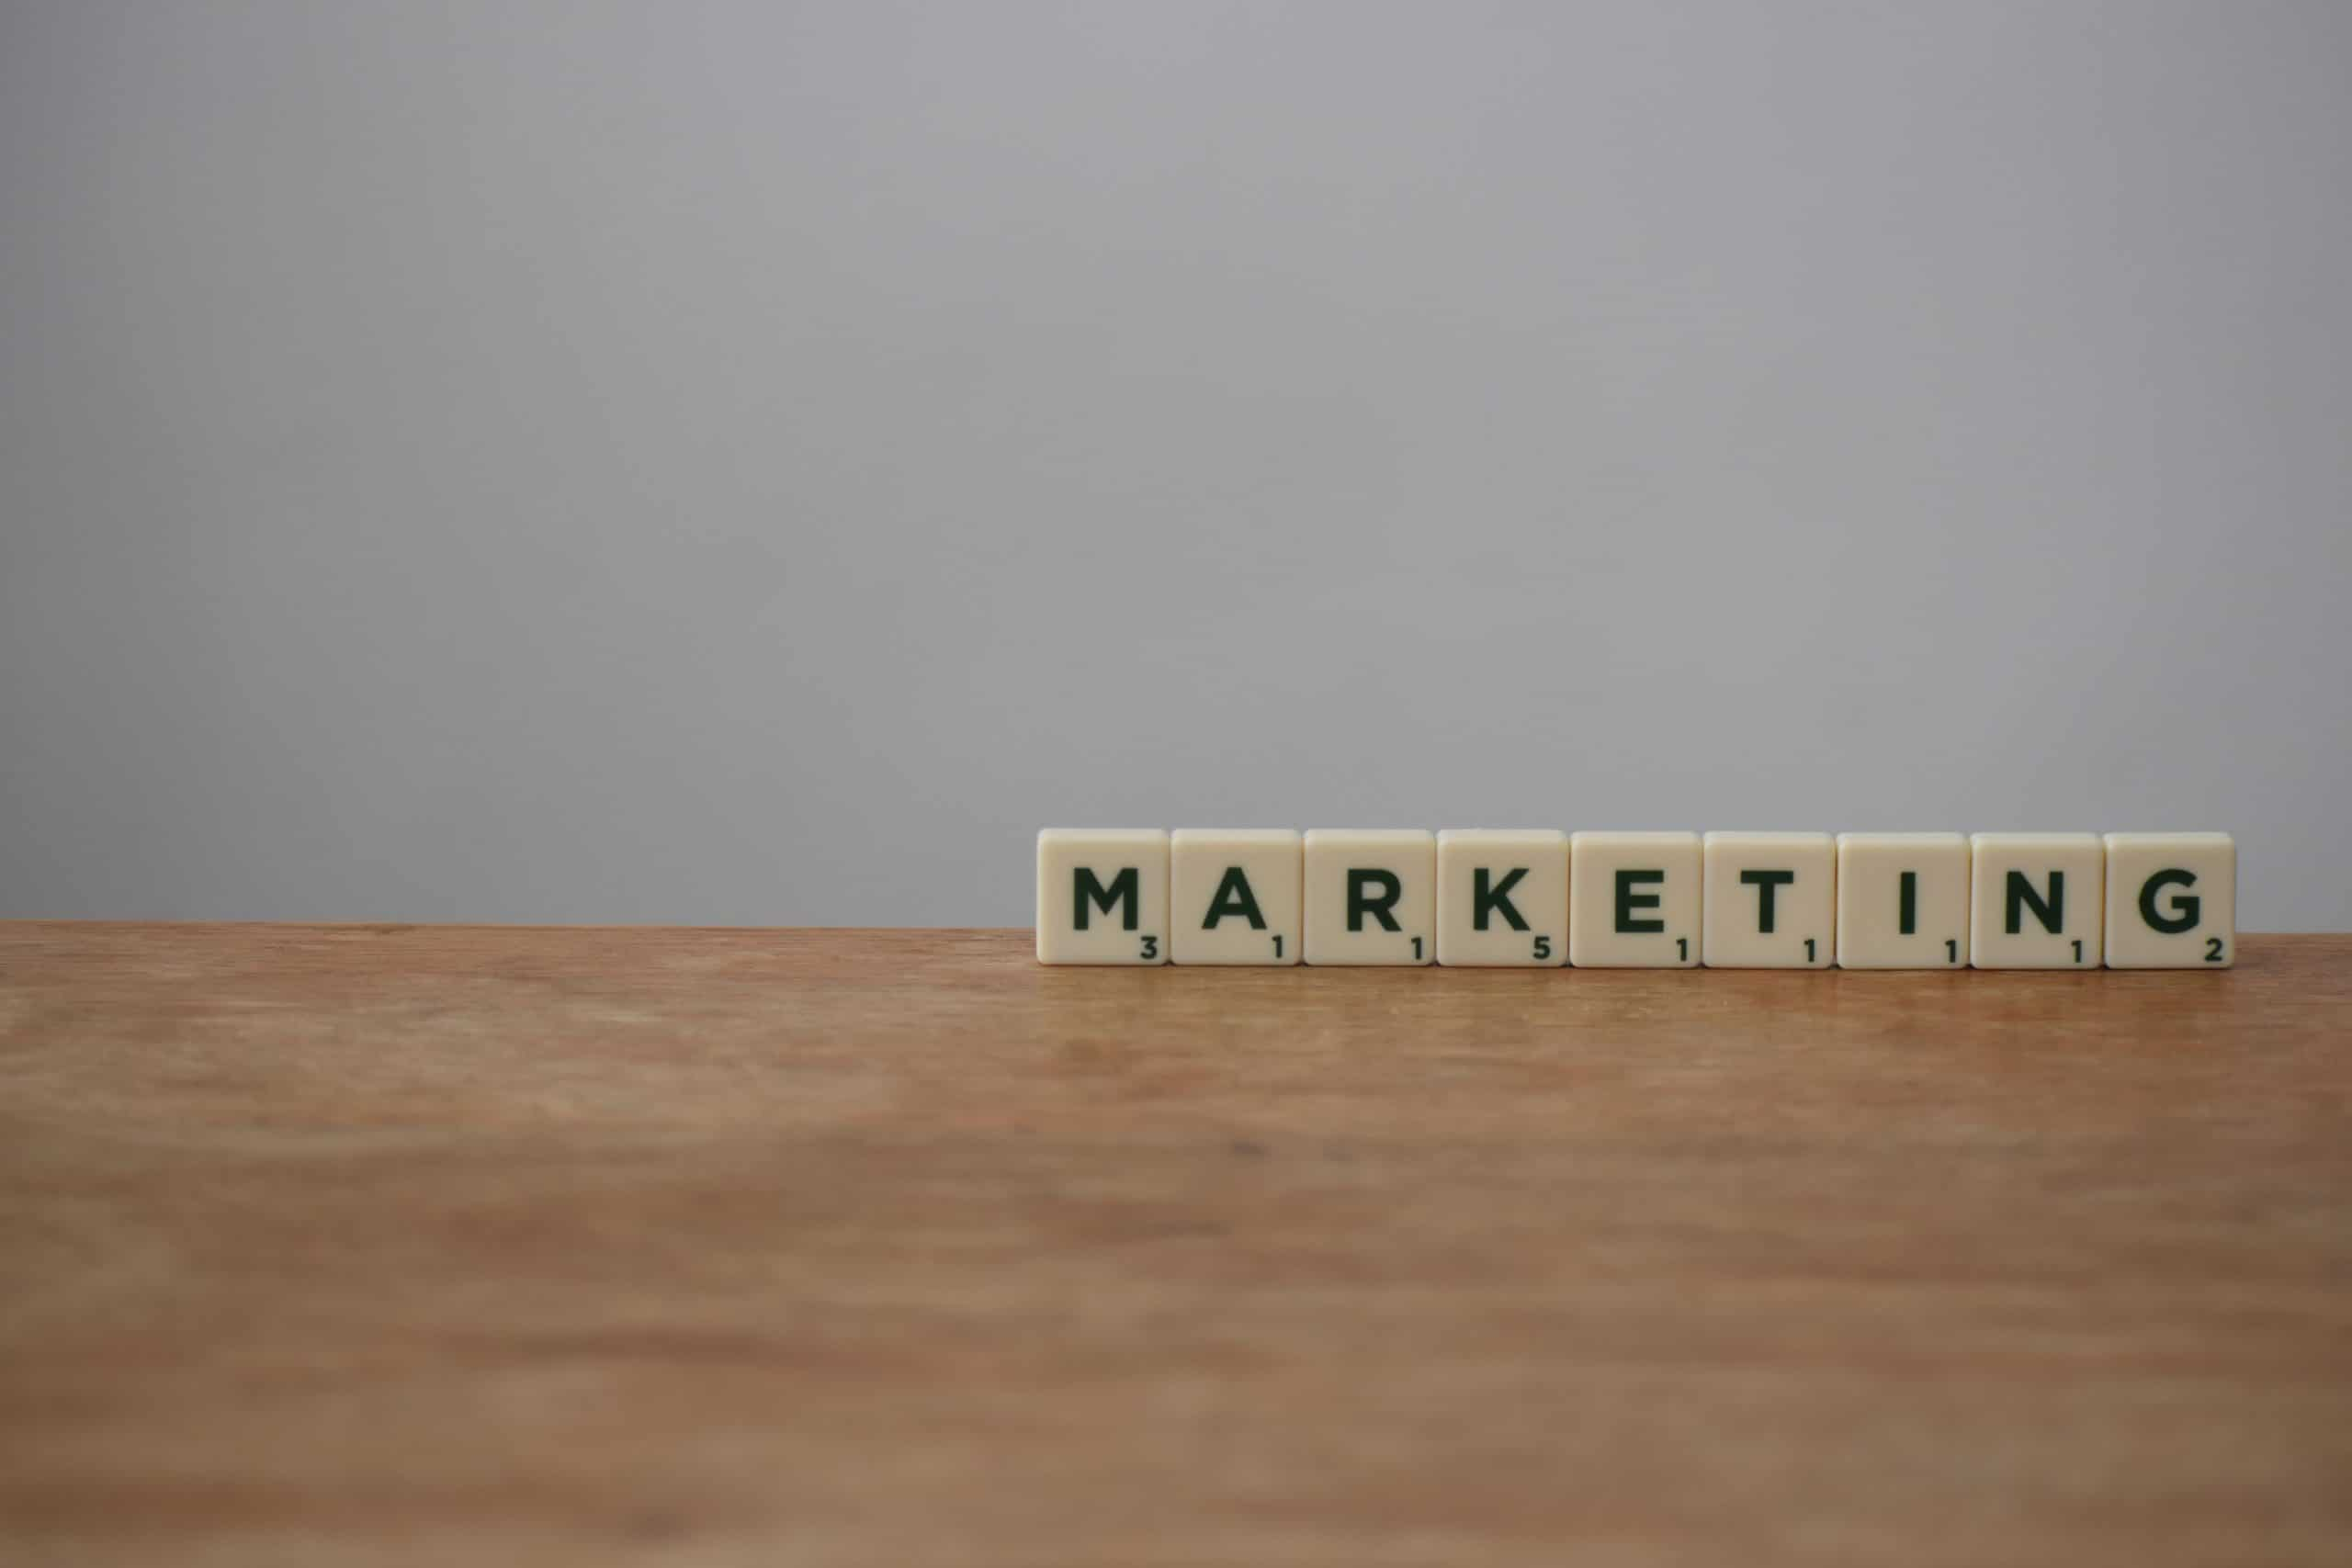 Marketing spelled out using Scrabble tiles